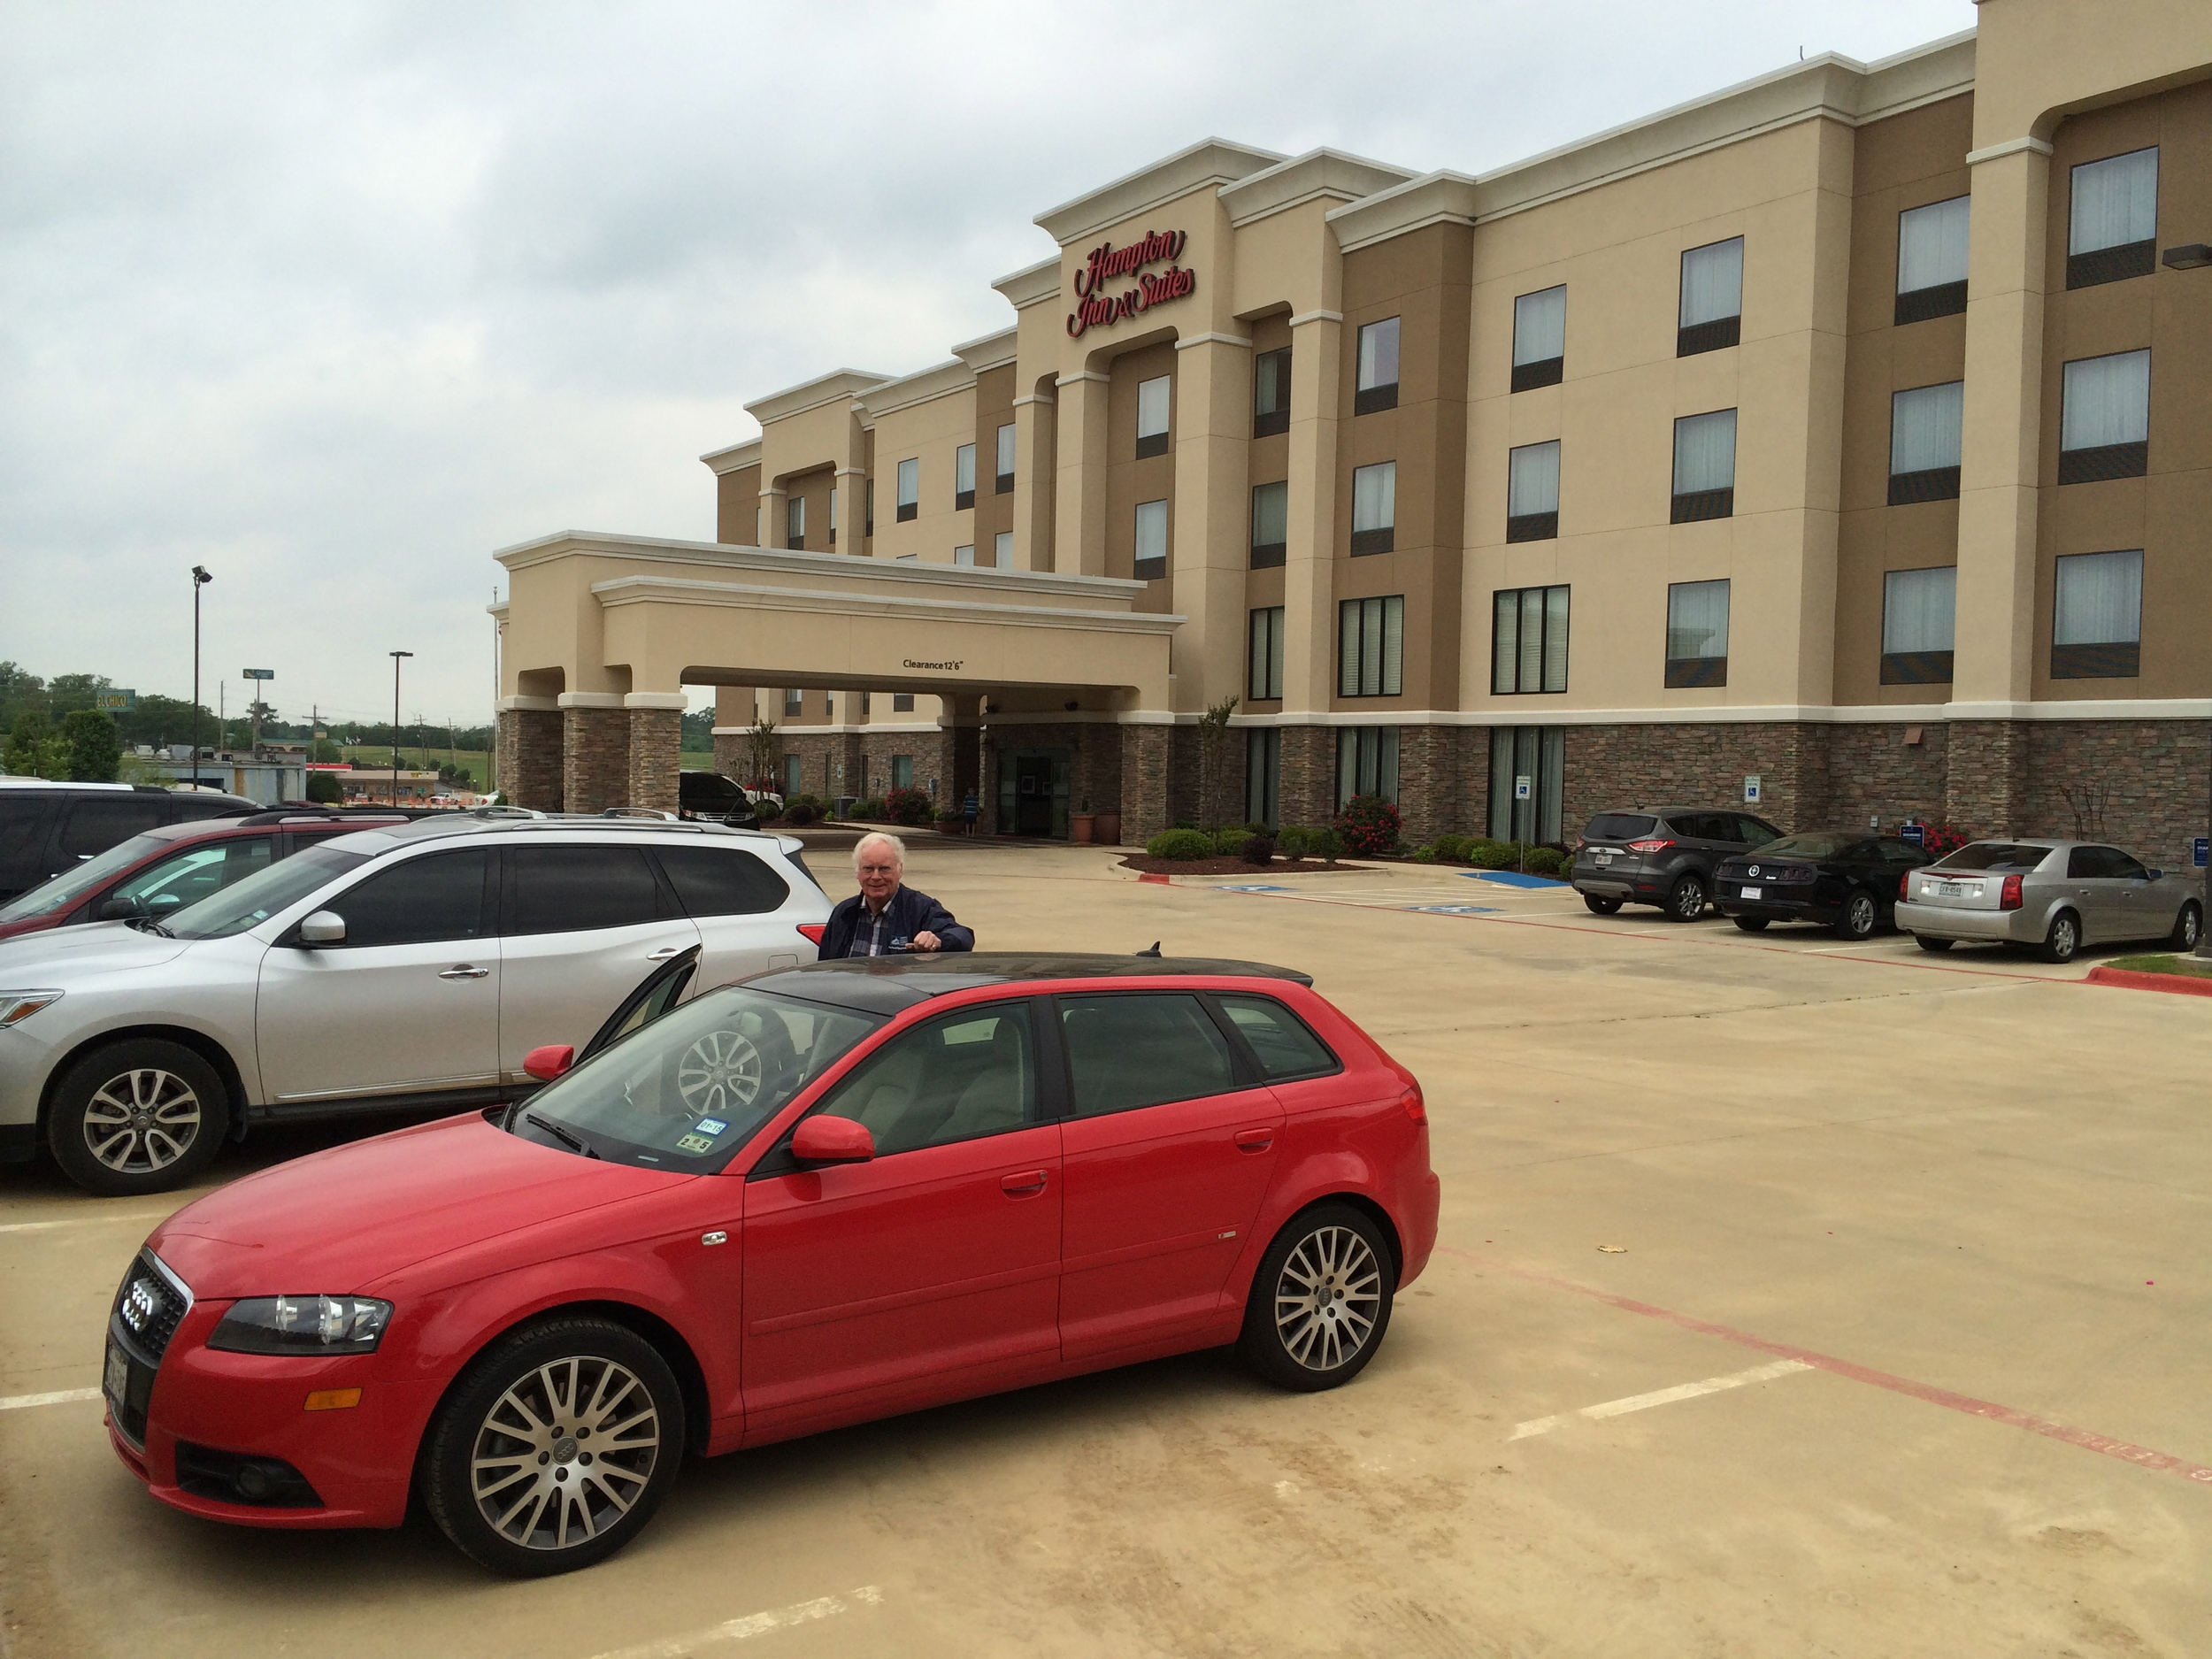 Navigator Ted Scull ready to guide us on Day Two, from Mount Pleasant, TX to Memphis, TN via Little Rock, AR.